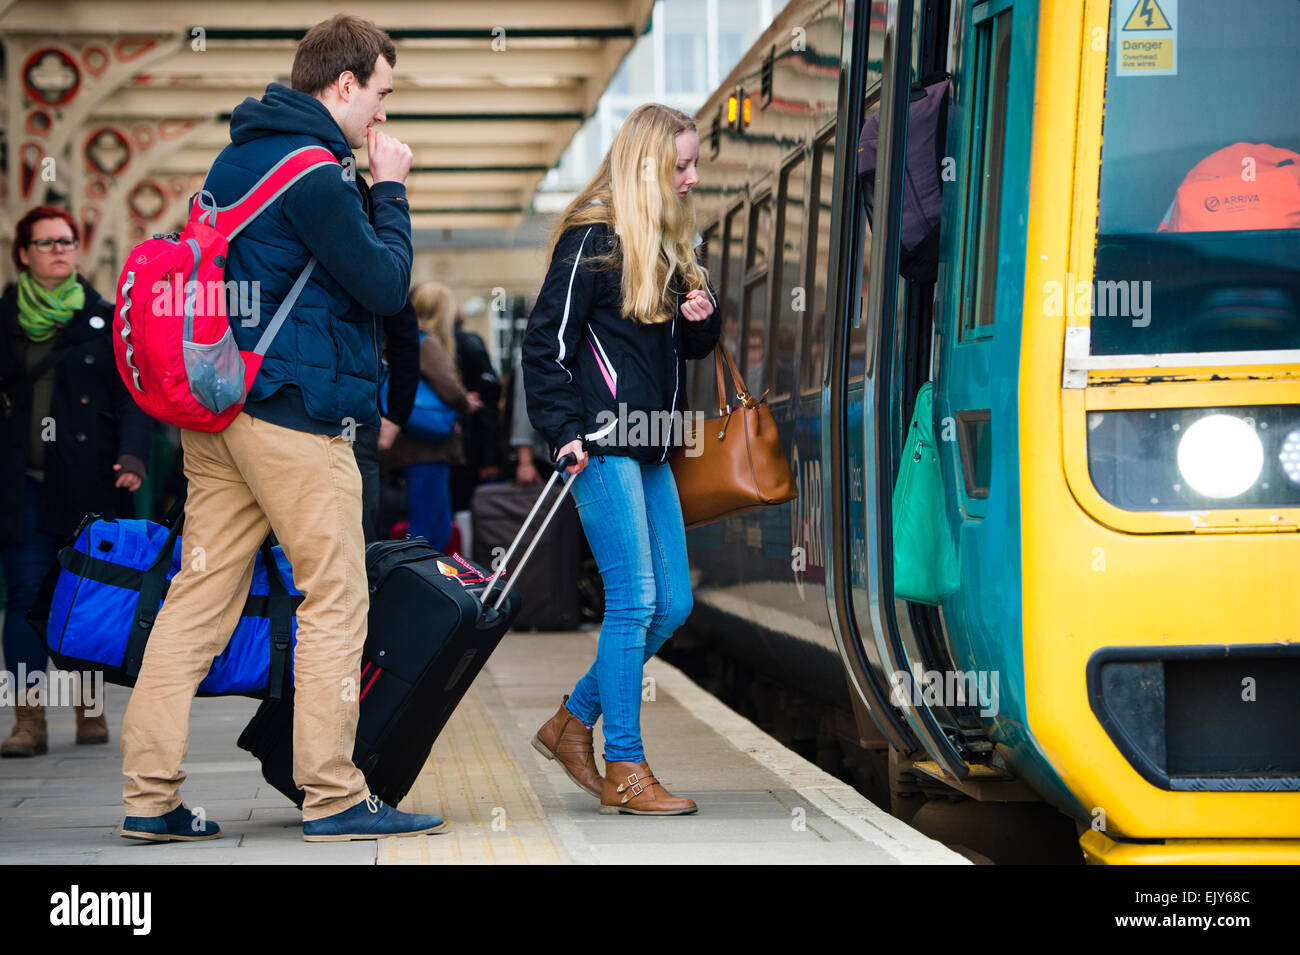 Public transport: University Students  going home getting on an Arriva Wales train at Aberystwyth railway station - Stock Image